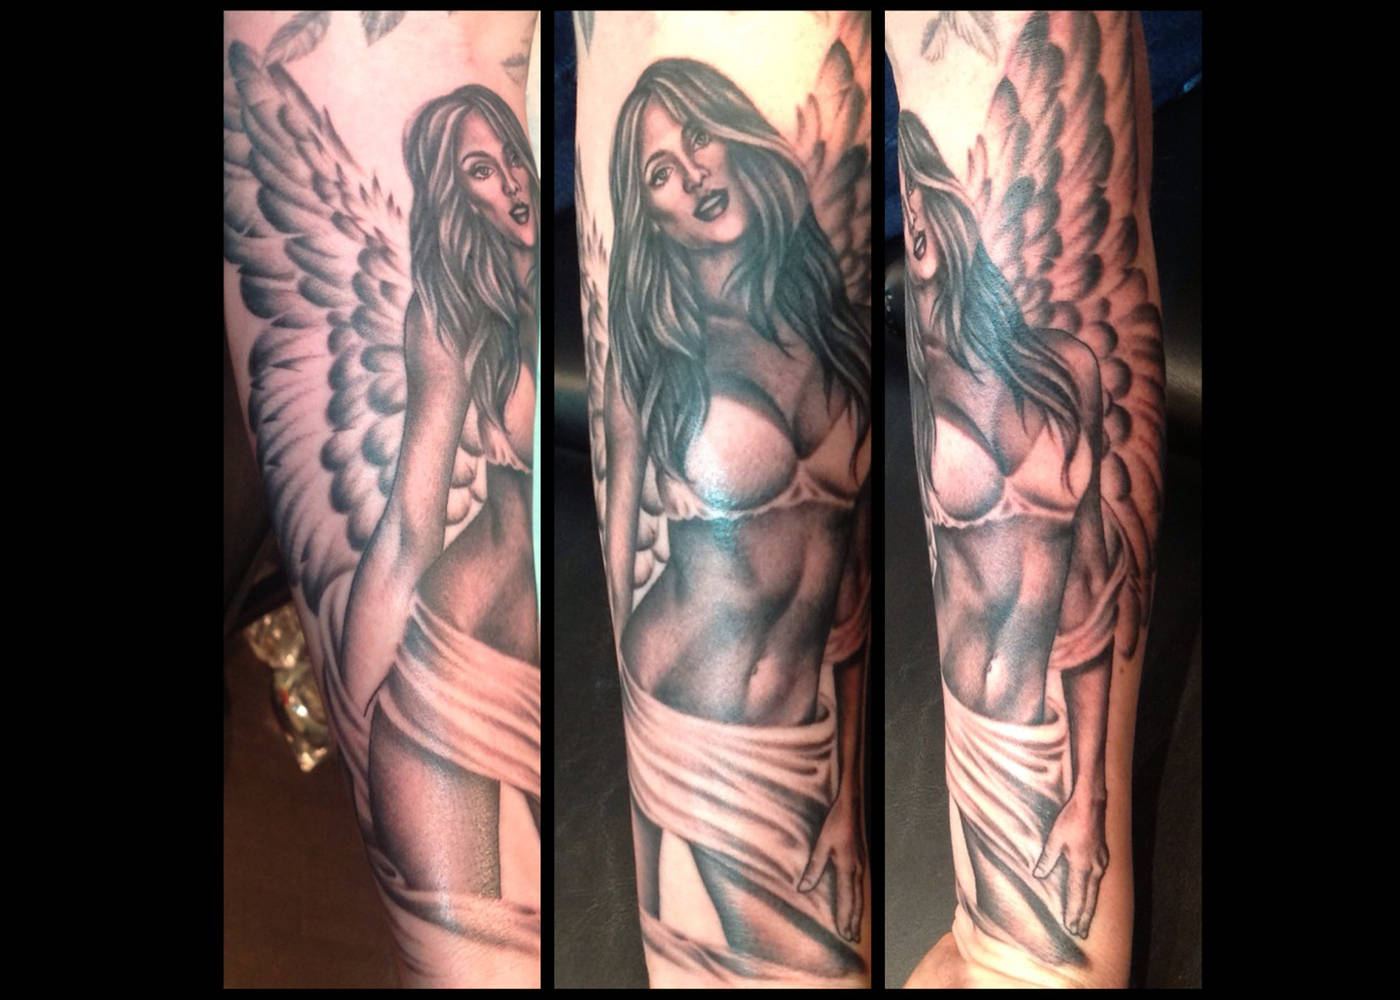 Angel Pin Up Tattoo Kelowna B.C. - Sweet Siren Tattoo in Kelowna B.C.